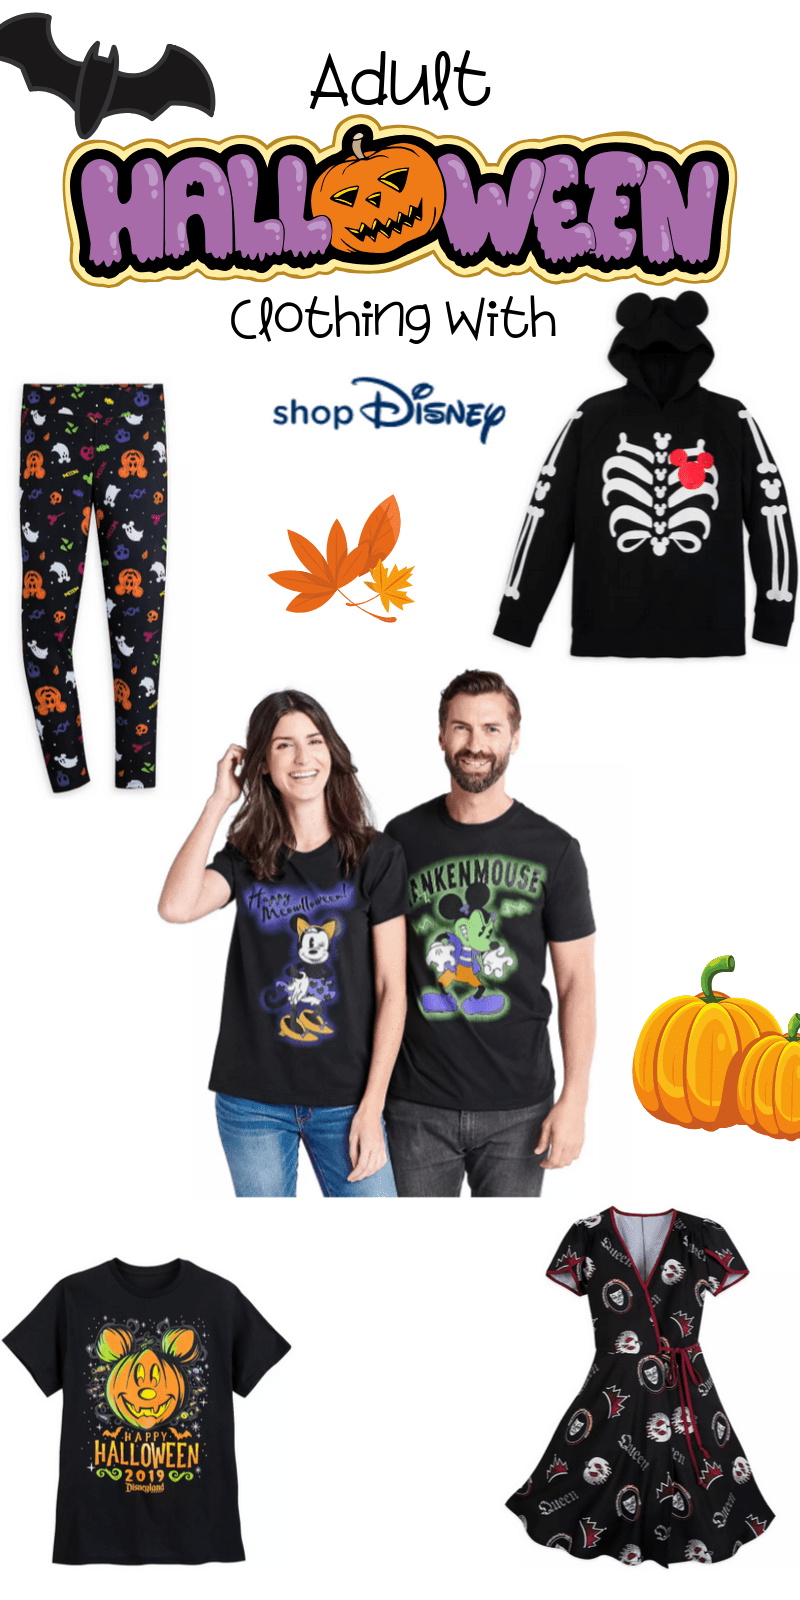 Here are the best in Disney Halloween Clothing for Adults & Teens. This fantastic post rounds up the spooky and adorableness of ShopDisney's Halloween Collection for 2019.  #ad @ShopDisney #halloween2019 #disney #disneylove #disneymagic #waltdisney #disneyprincess #mickeymouse #disneyphoto #disneylife #disneyfan #mickey #disneyaddict #disnerd #starwars #halloween